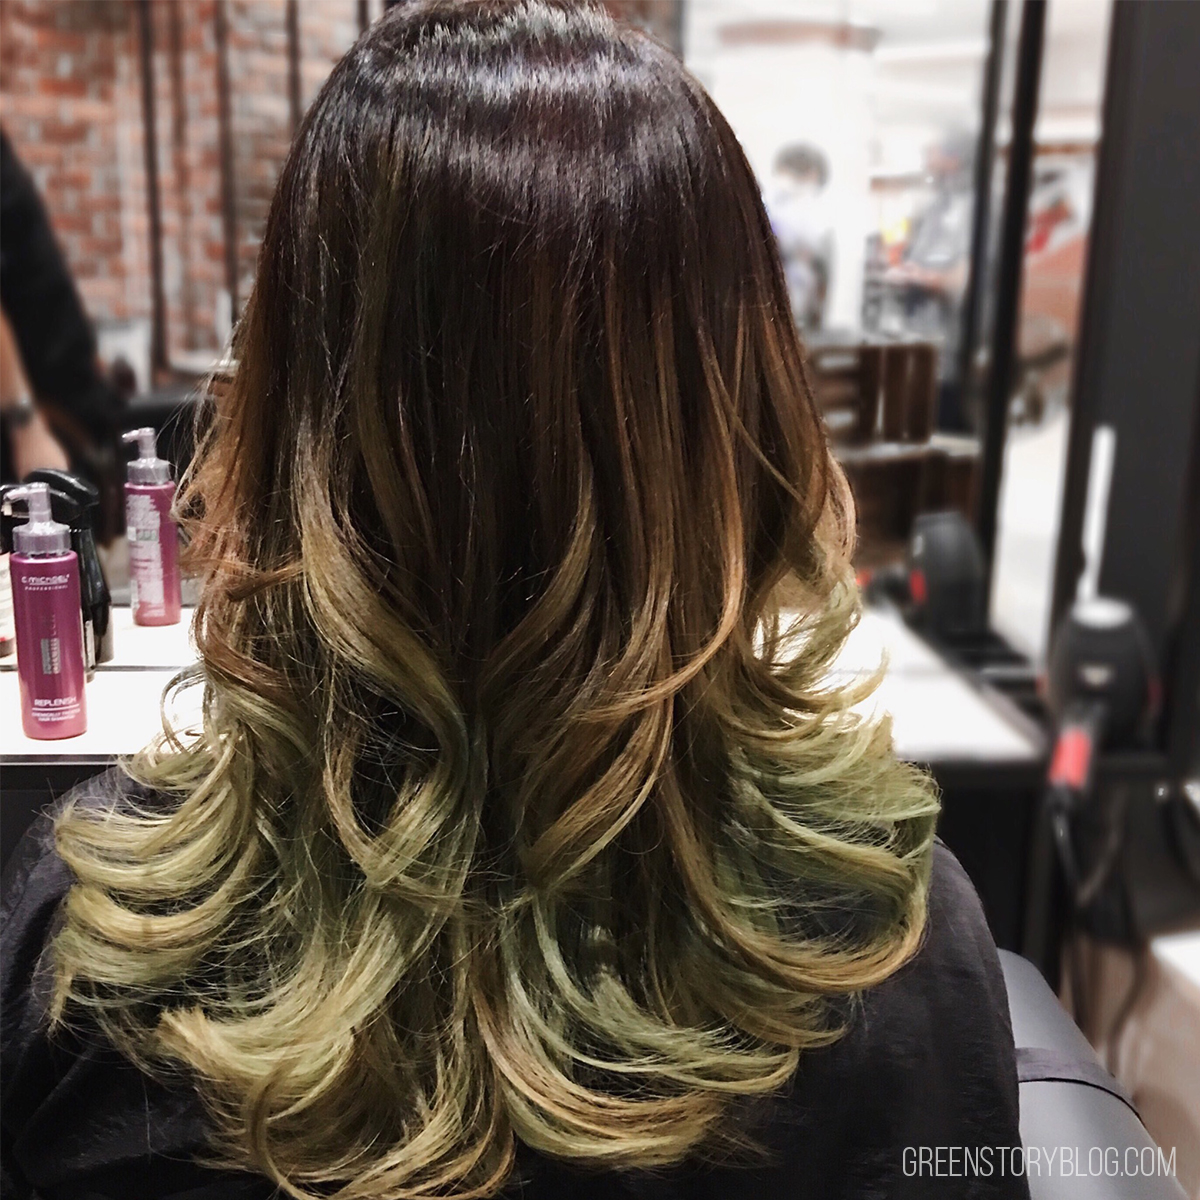 Green Ombre Hair